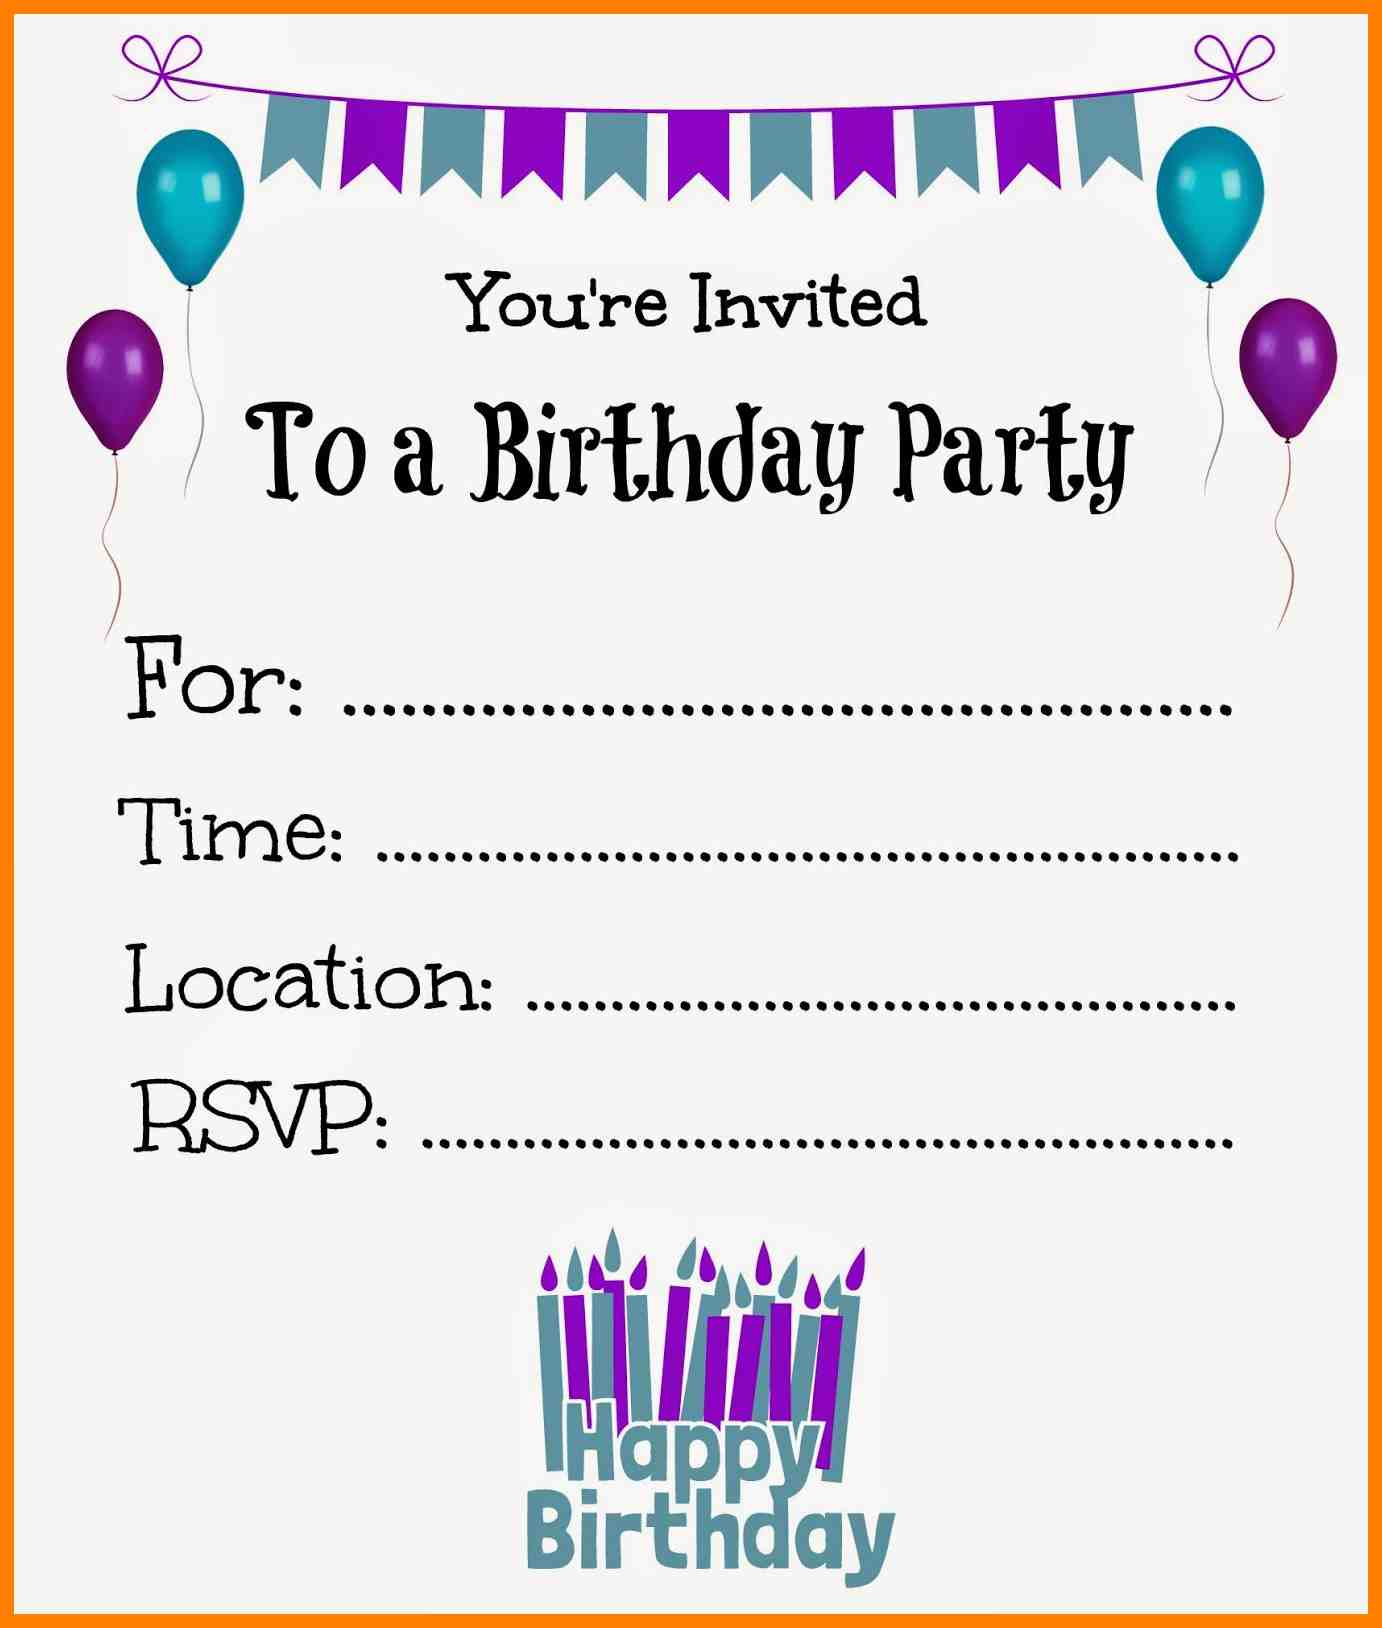 free customizable birthday invitation templates ; birthday-invitation-maker-captivating-birthday-party-invitation-maker-to-create-your-own-free-printable-birthday-invitations